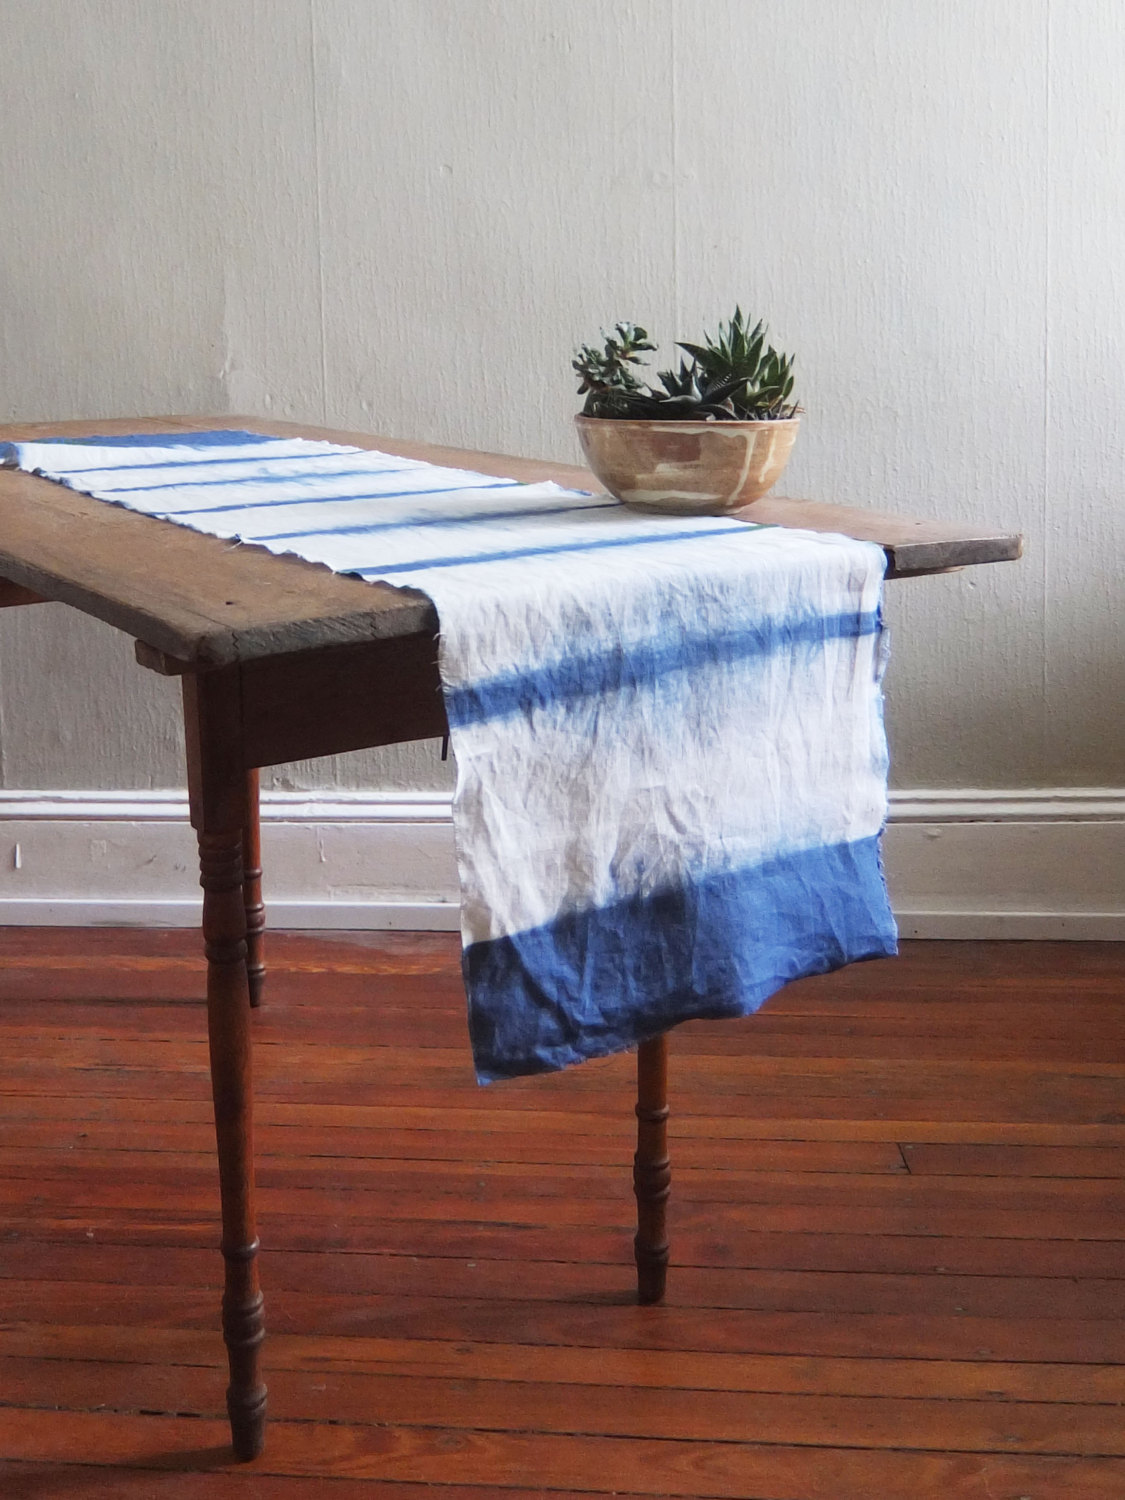 Shibori table runner from Flora Poste Studio